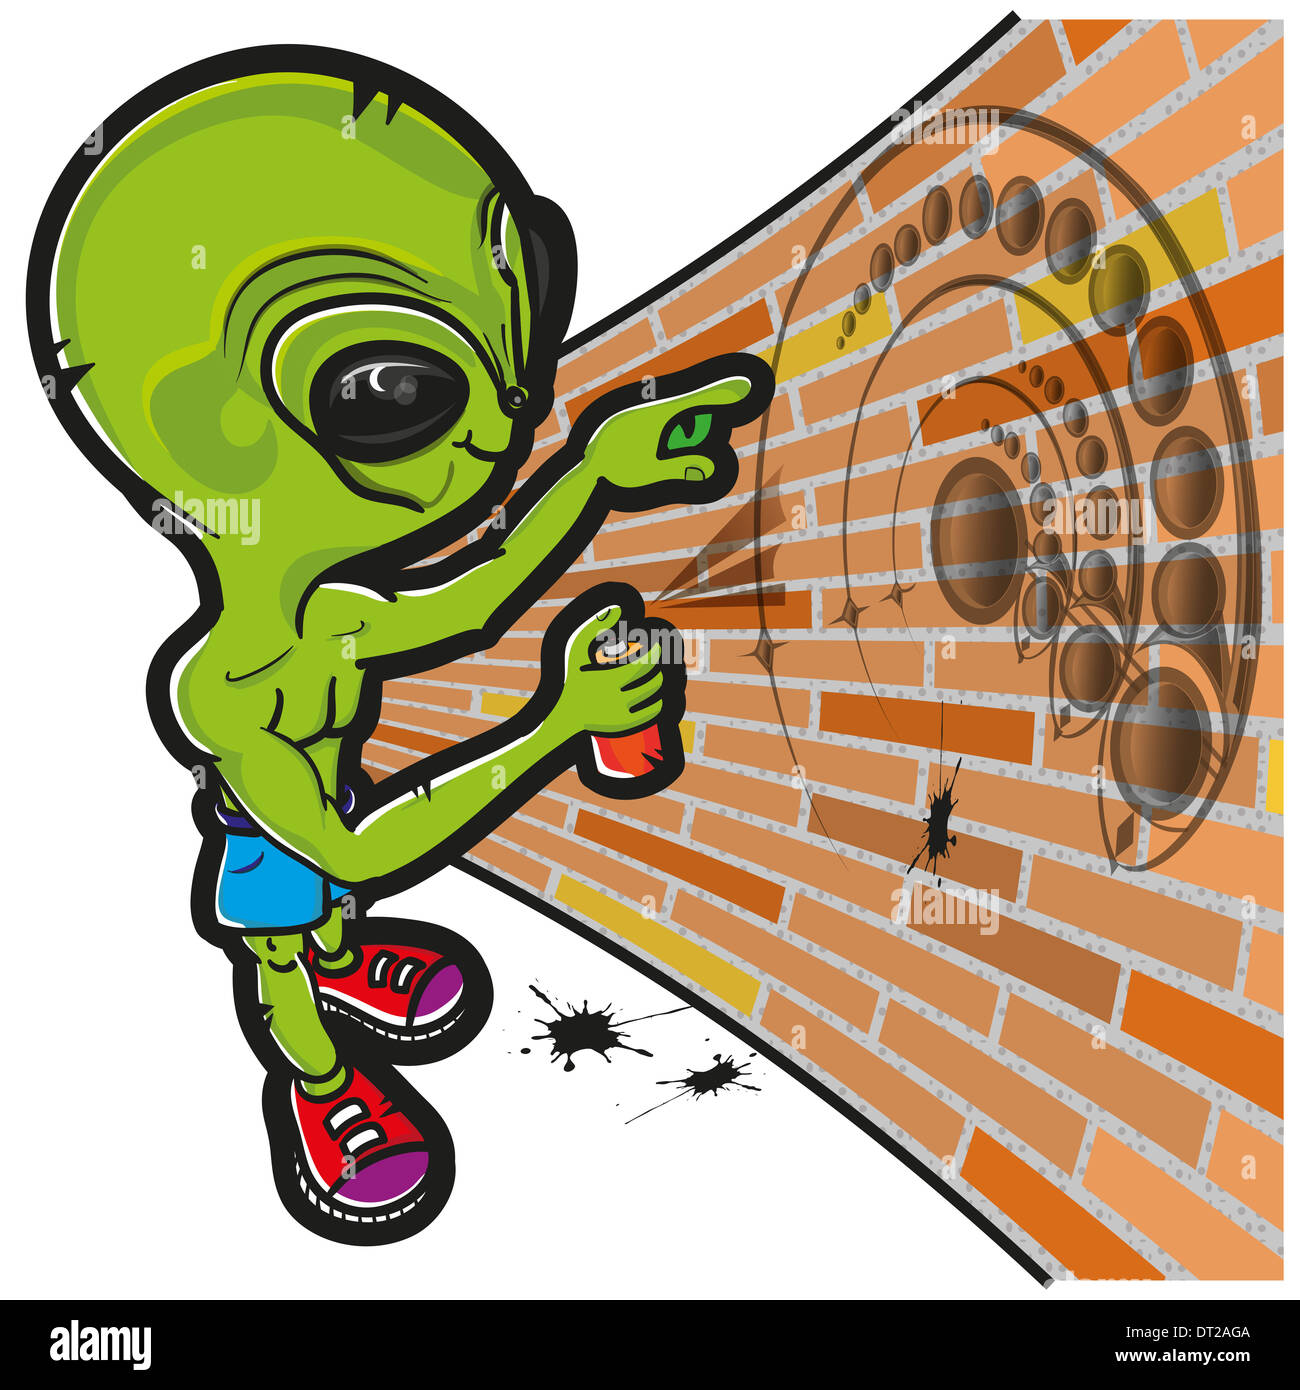 This file represents an alien that is drawing a crop circle in a wall. - Stock Image